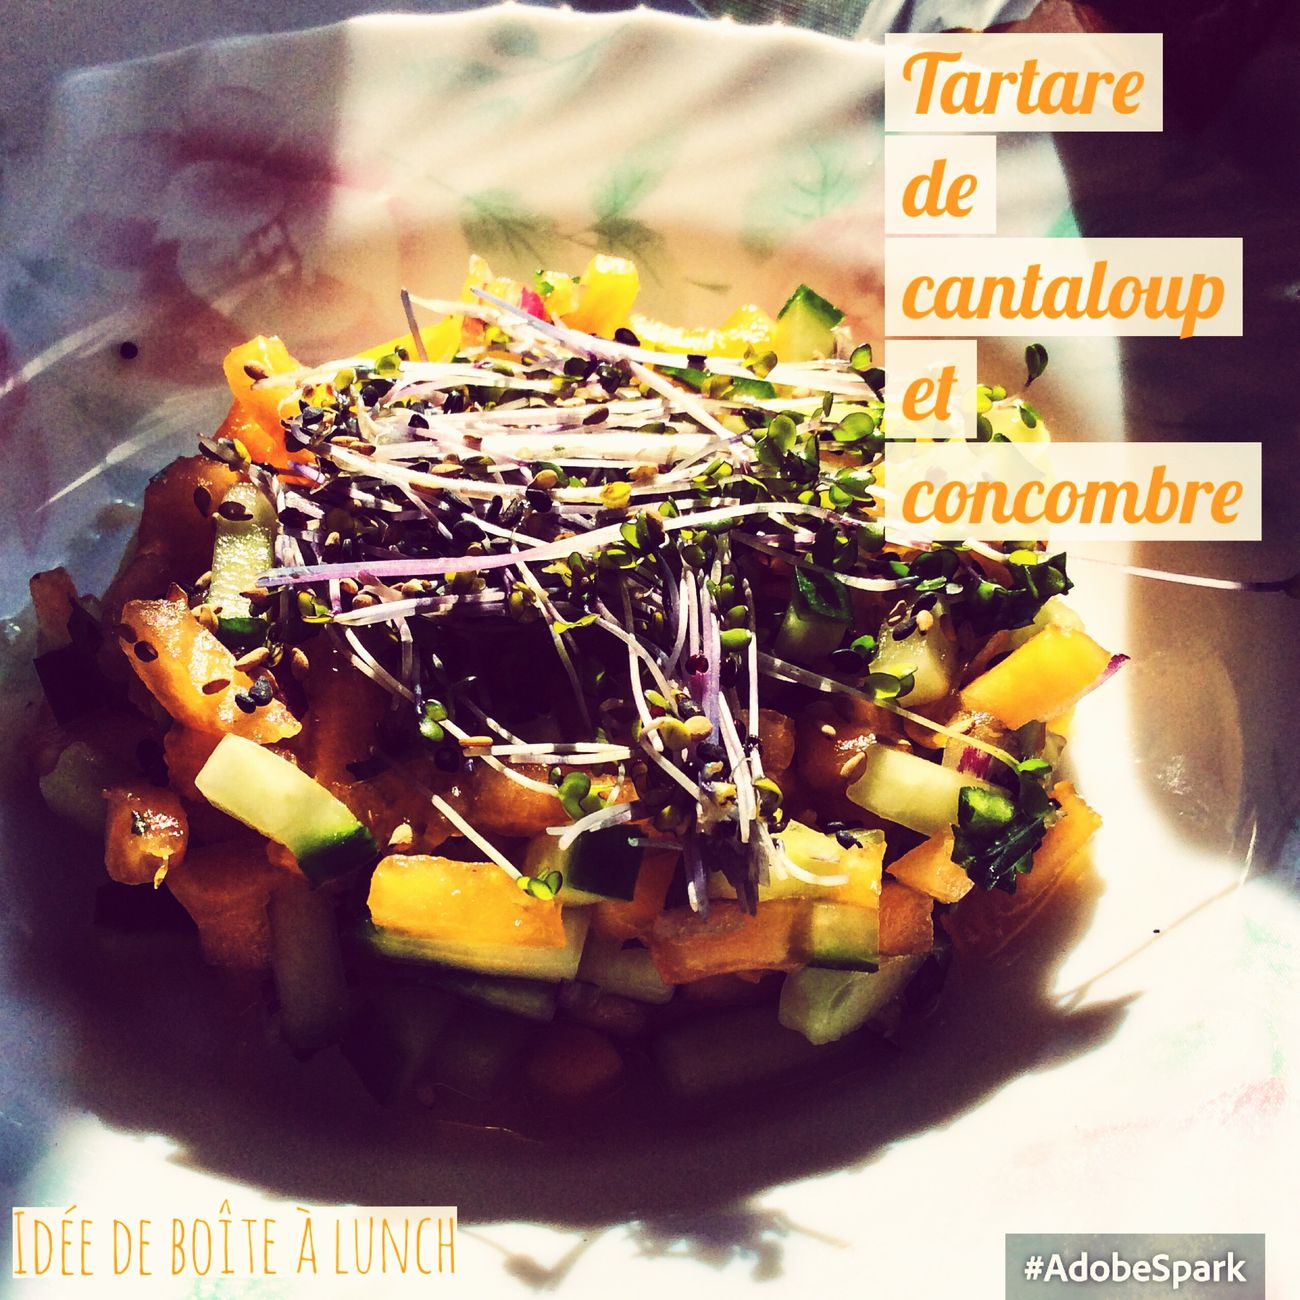 Tartare Concombre Cantaloup La Vida Es Bella What's For Dinner? Foodie Food Photography Vegetables Foodphotography Idées De Boîtes à Lunch